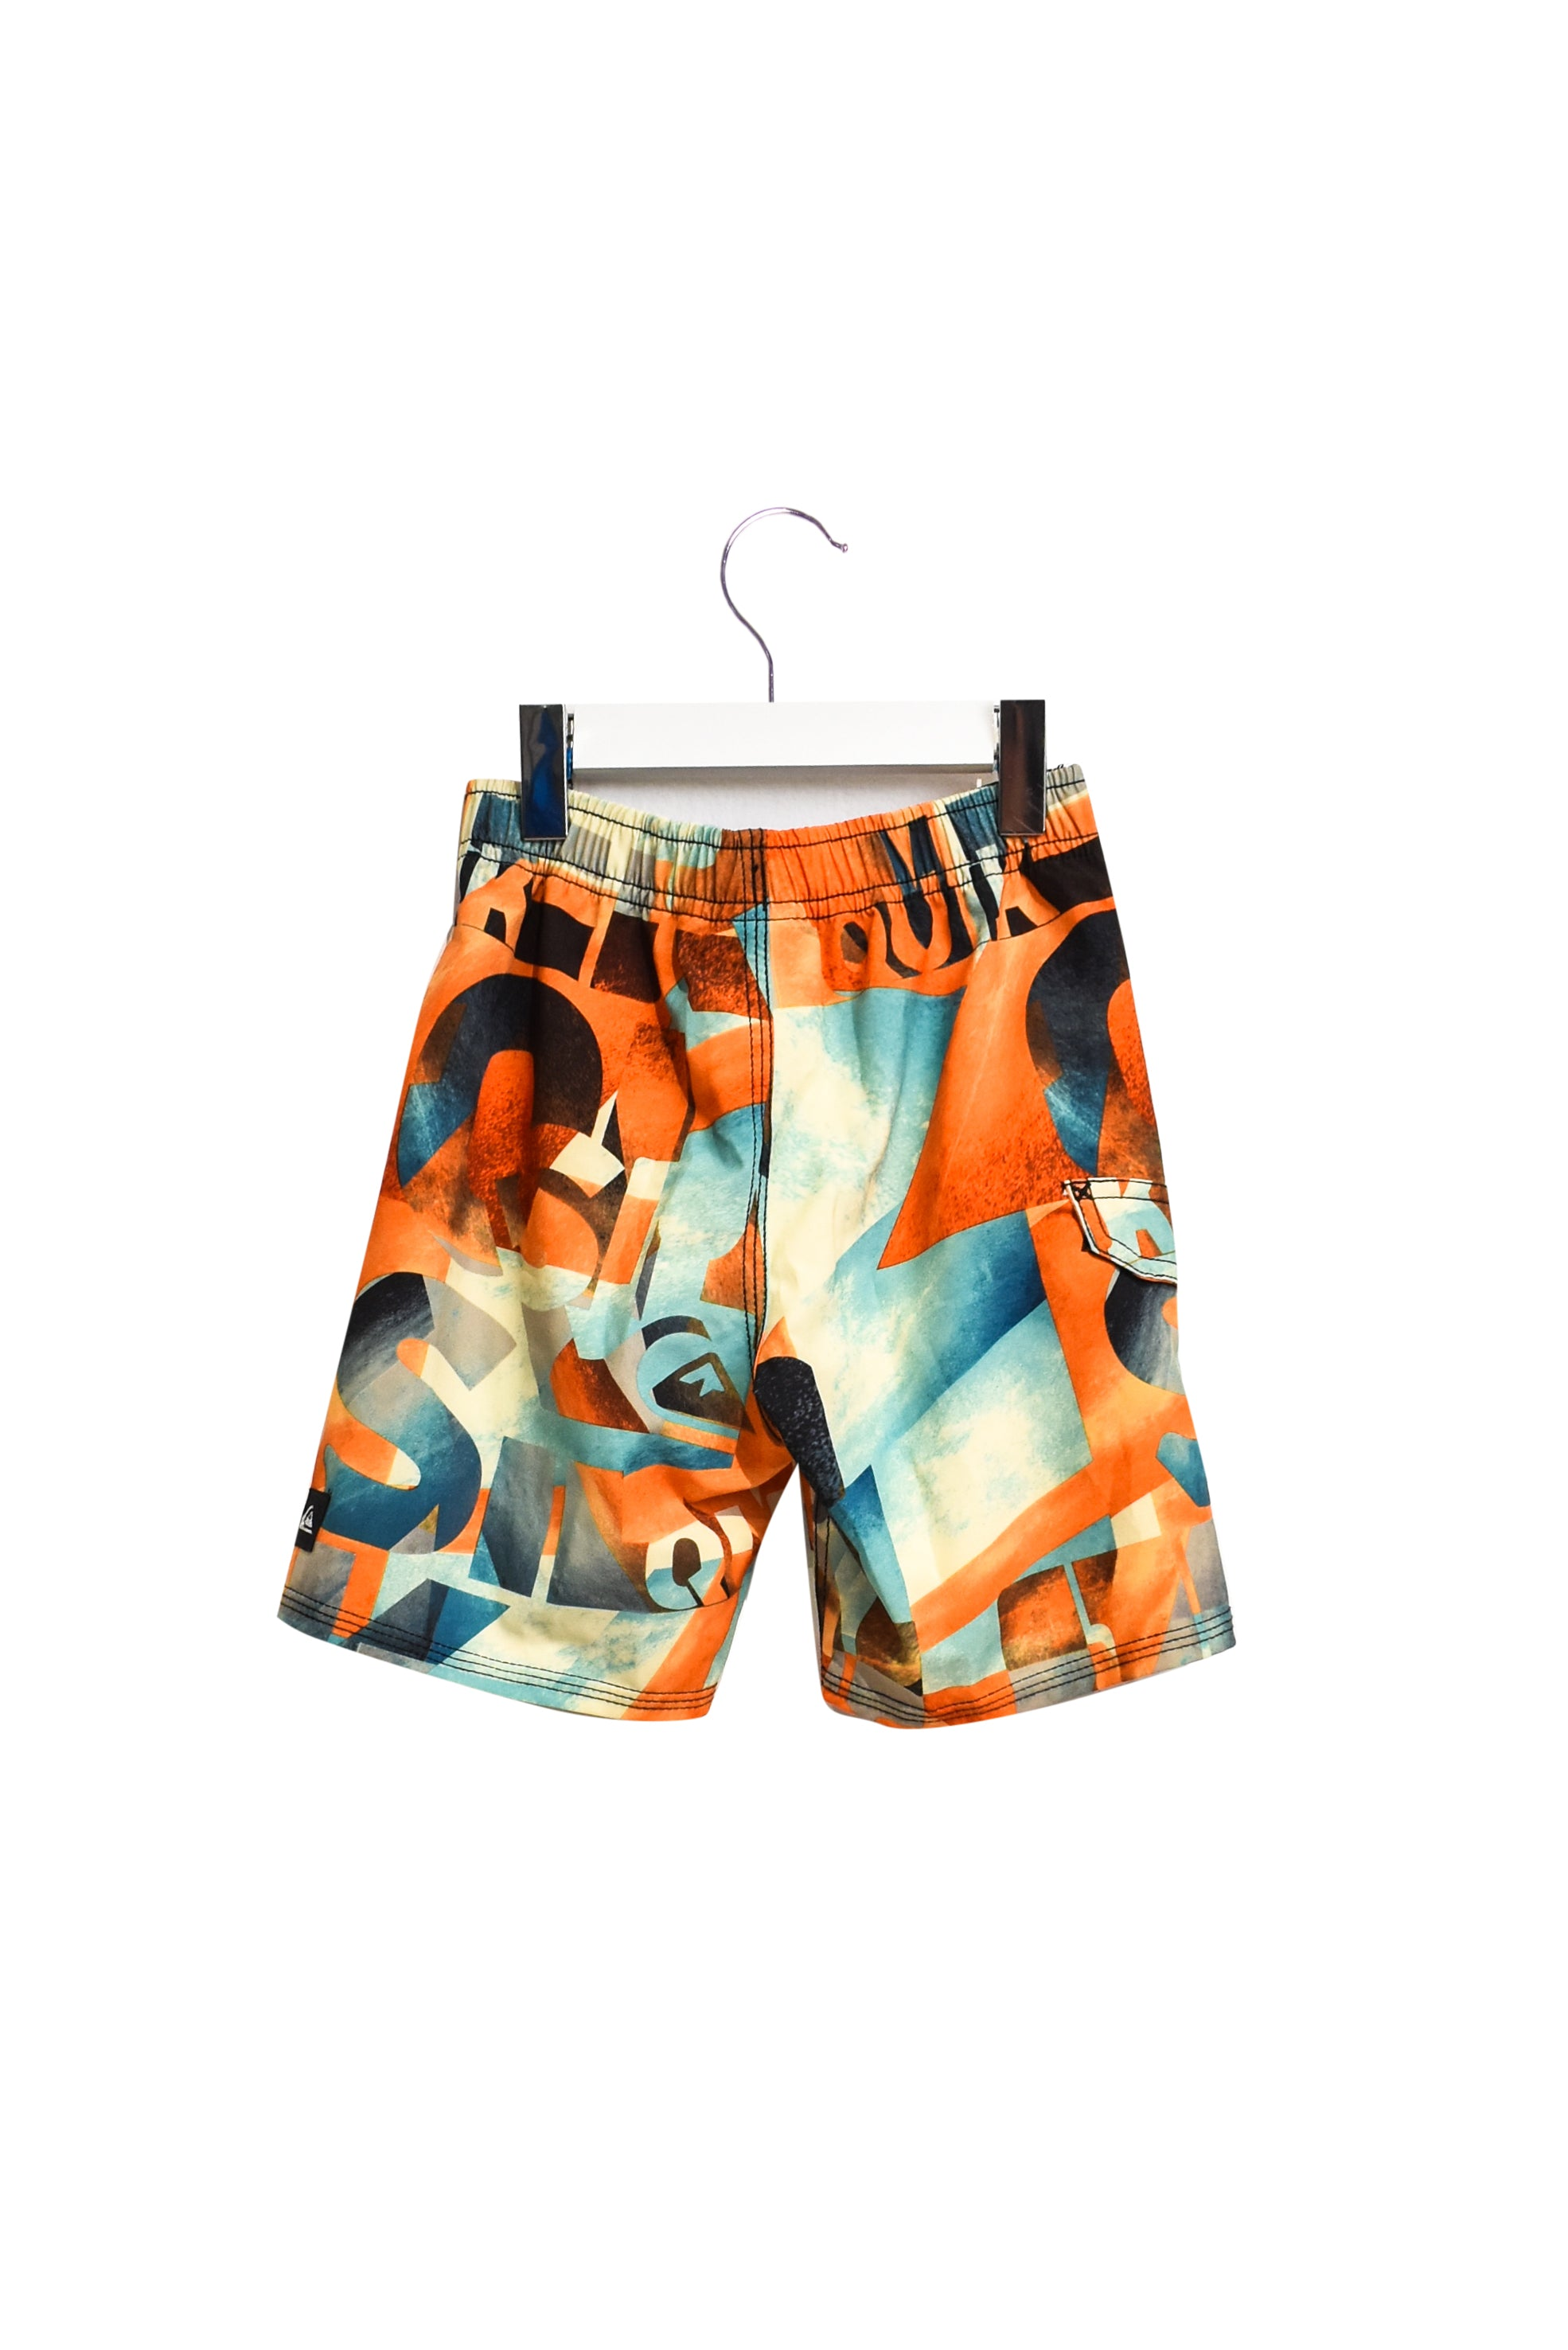 39f328cb9e 10016226 Quiksilver Baby~Swimwear 18-24M at Retykle